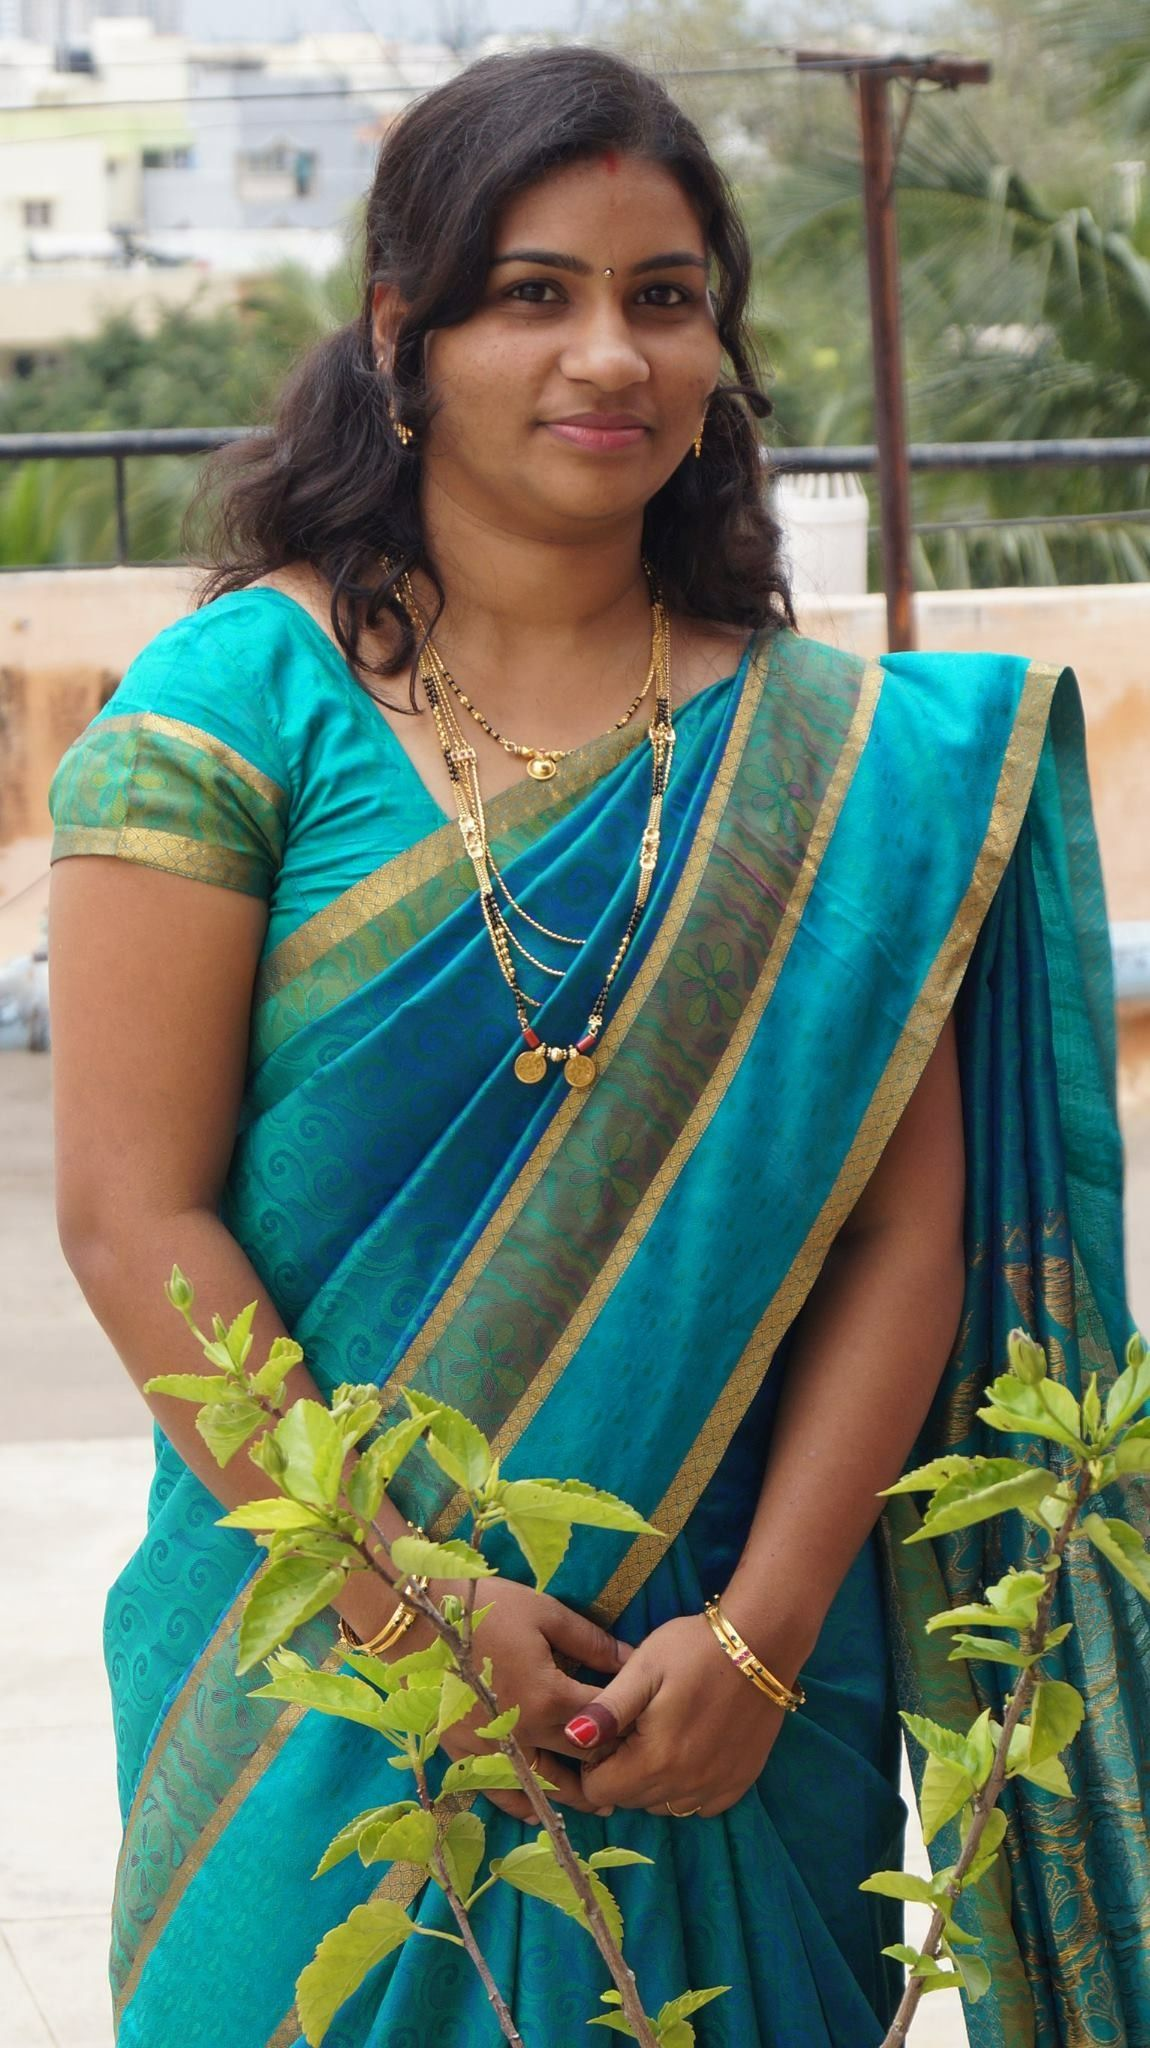 Pure indian teen pic